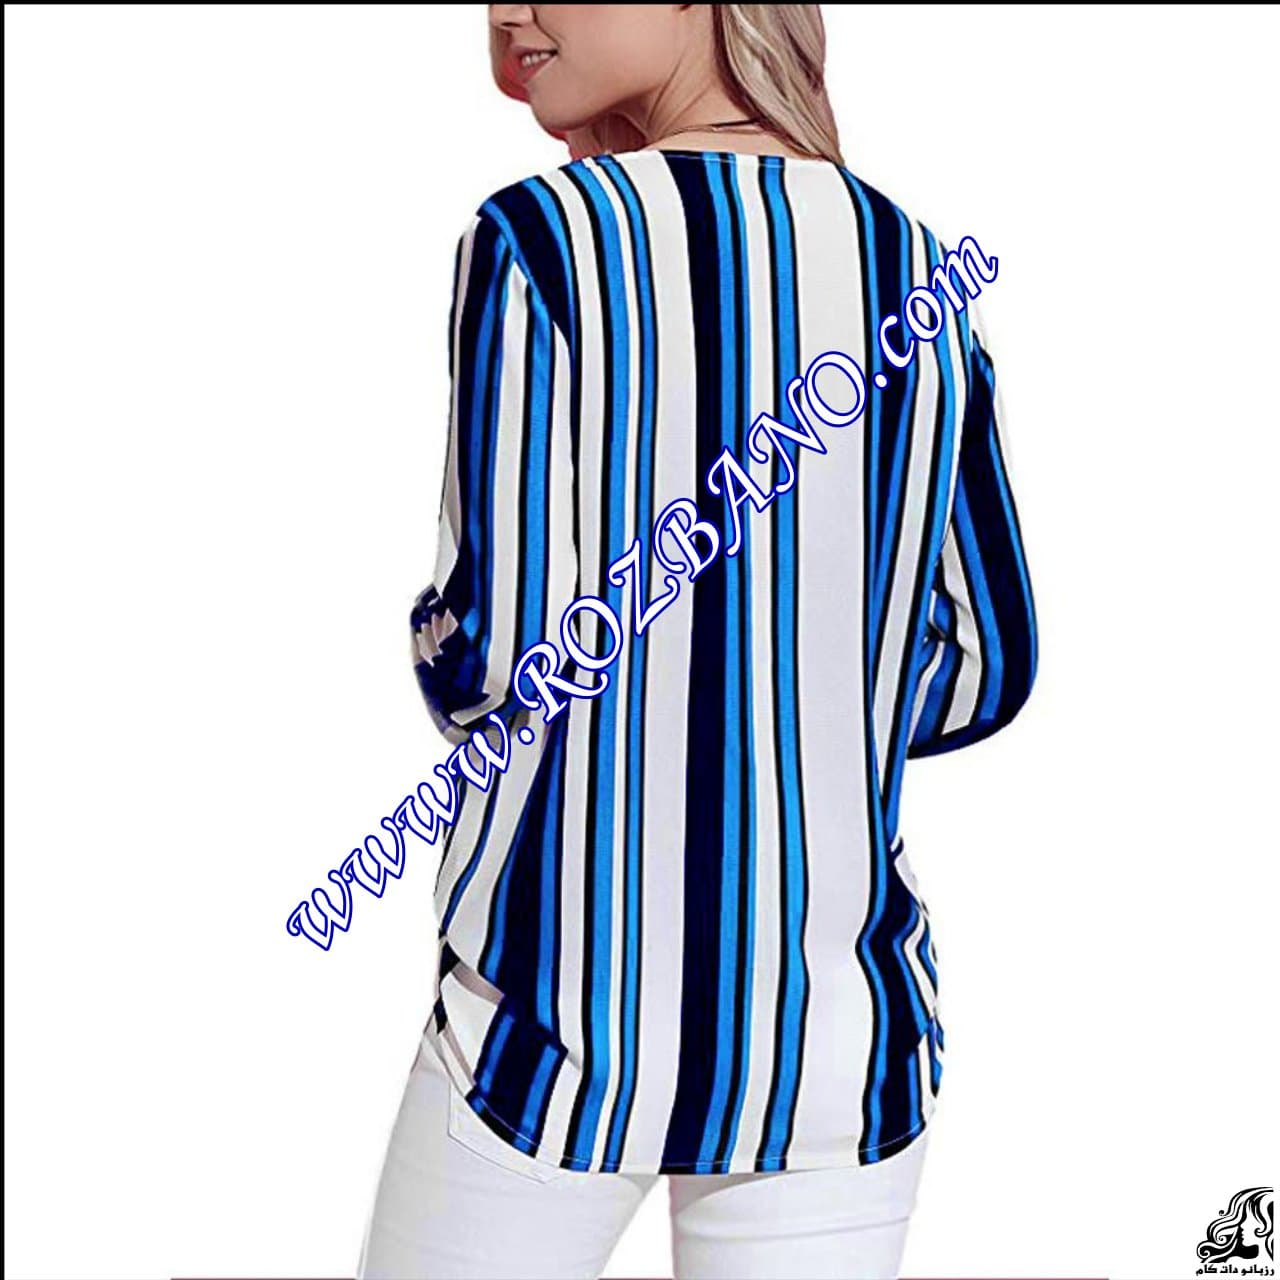 https://up.rozbano.com/view/2895139/Striped%20Womens%20Tops%20And%20Blouses%20Long%20Sleeve-01.jpg